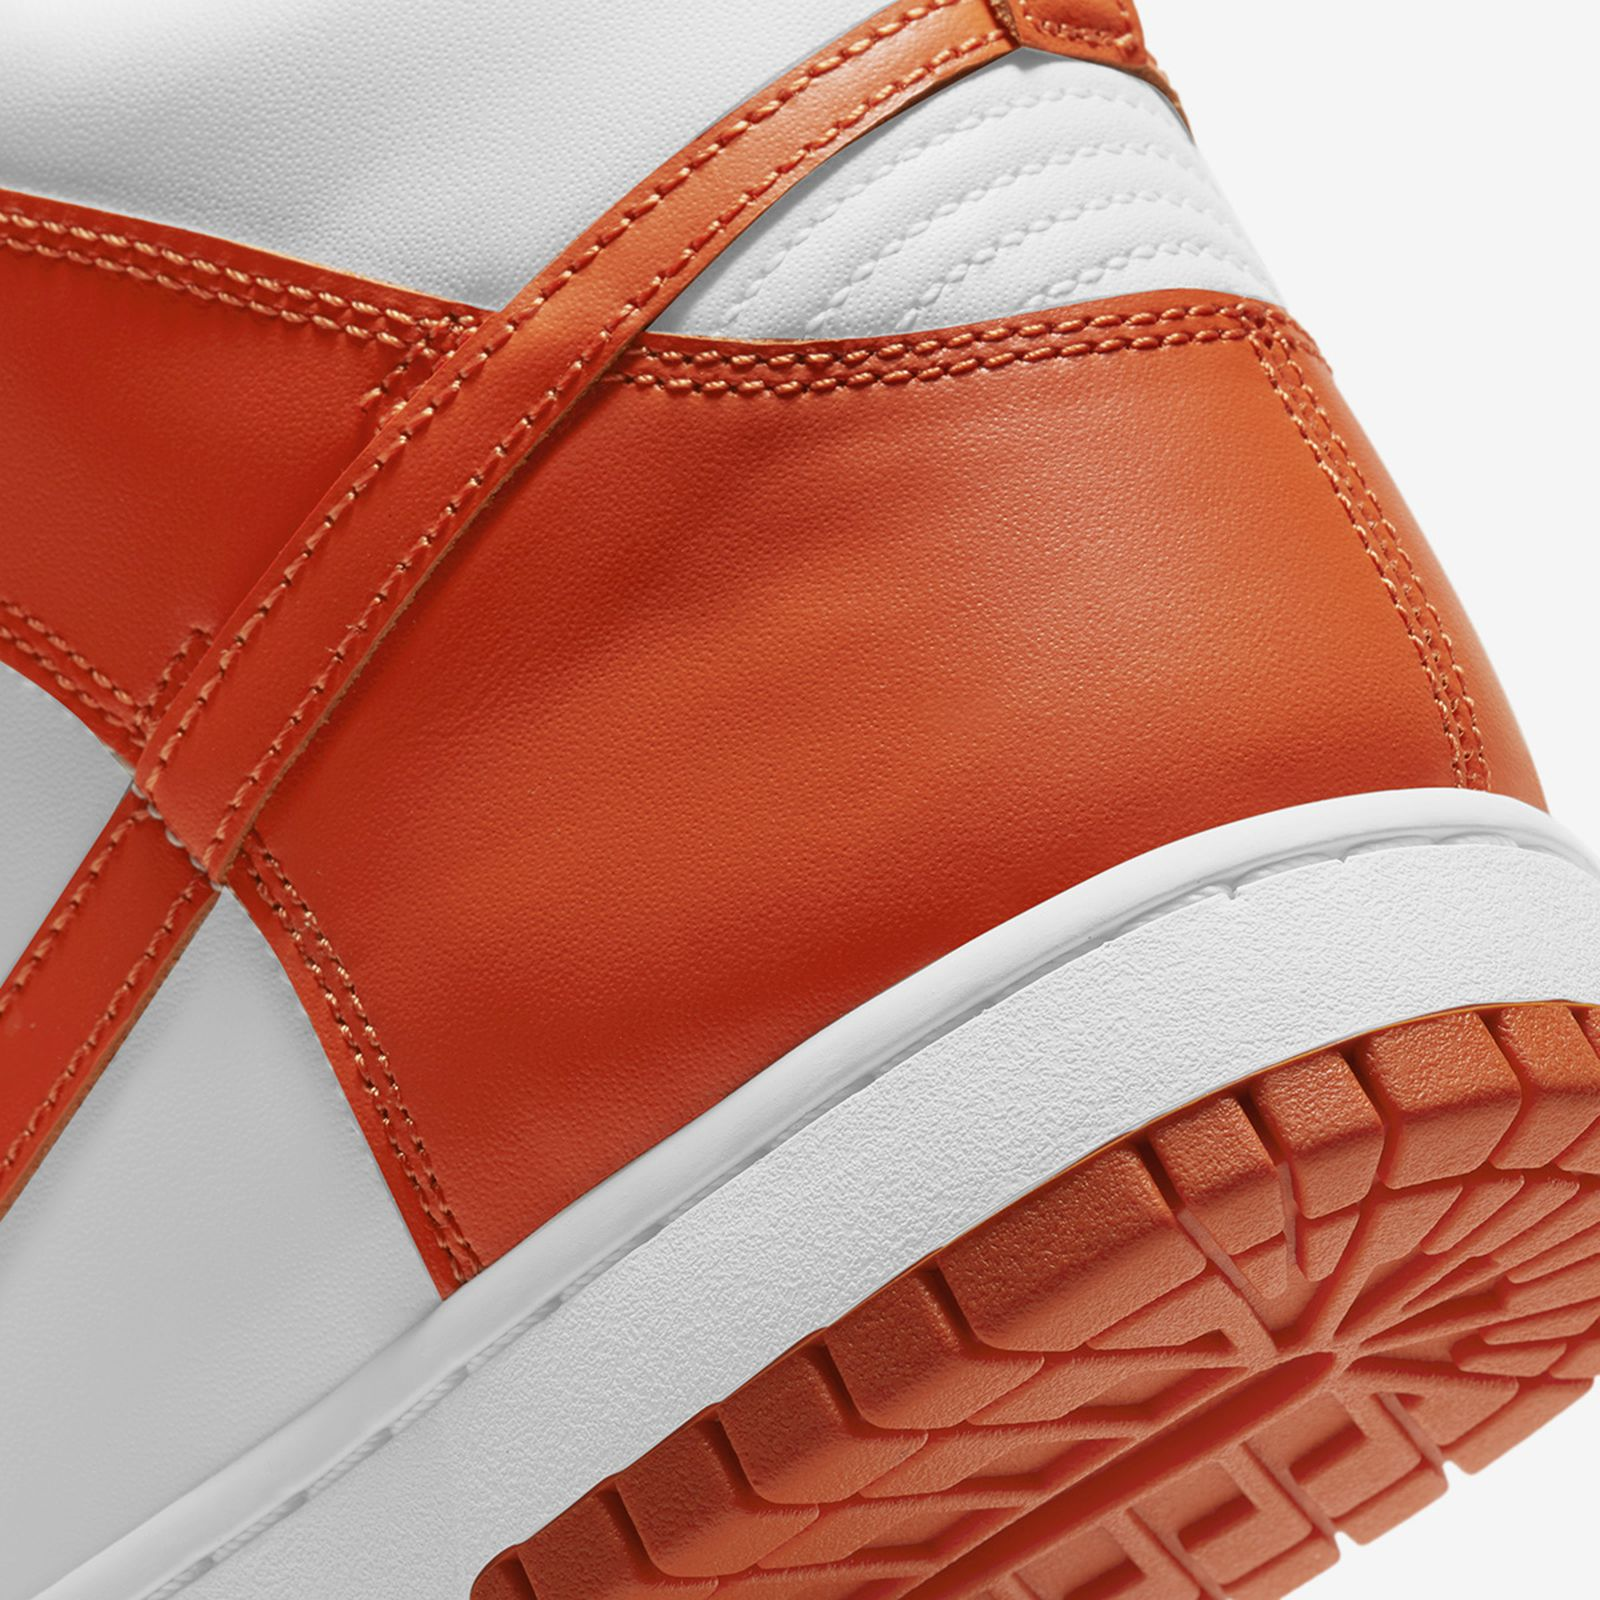 nike-dunk-spring-2021-release-date-price-1-25